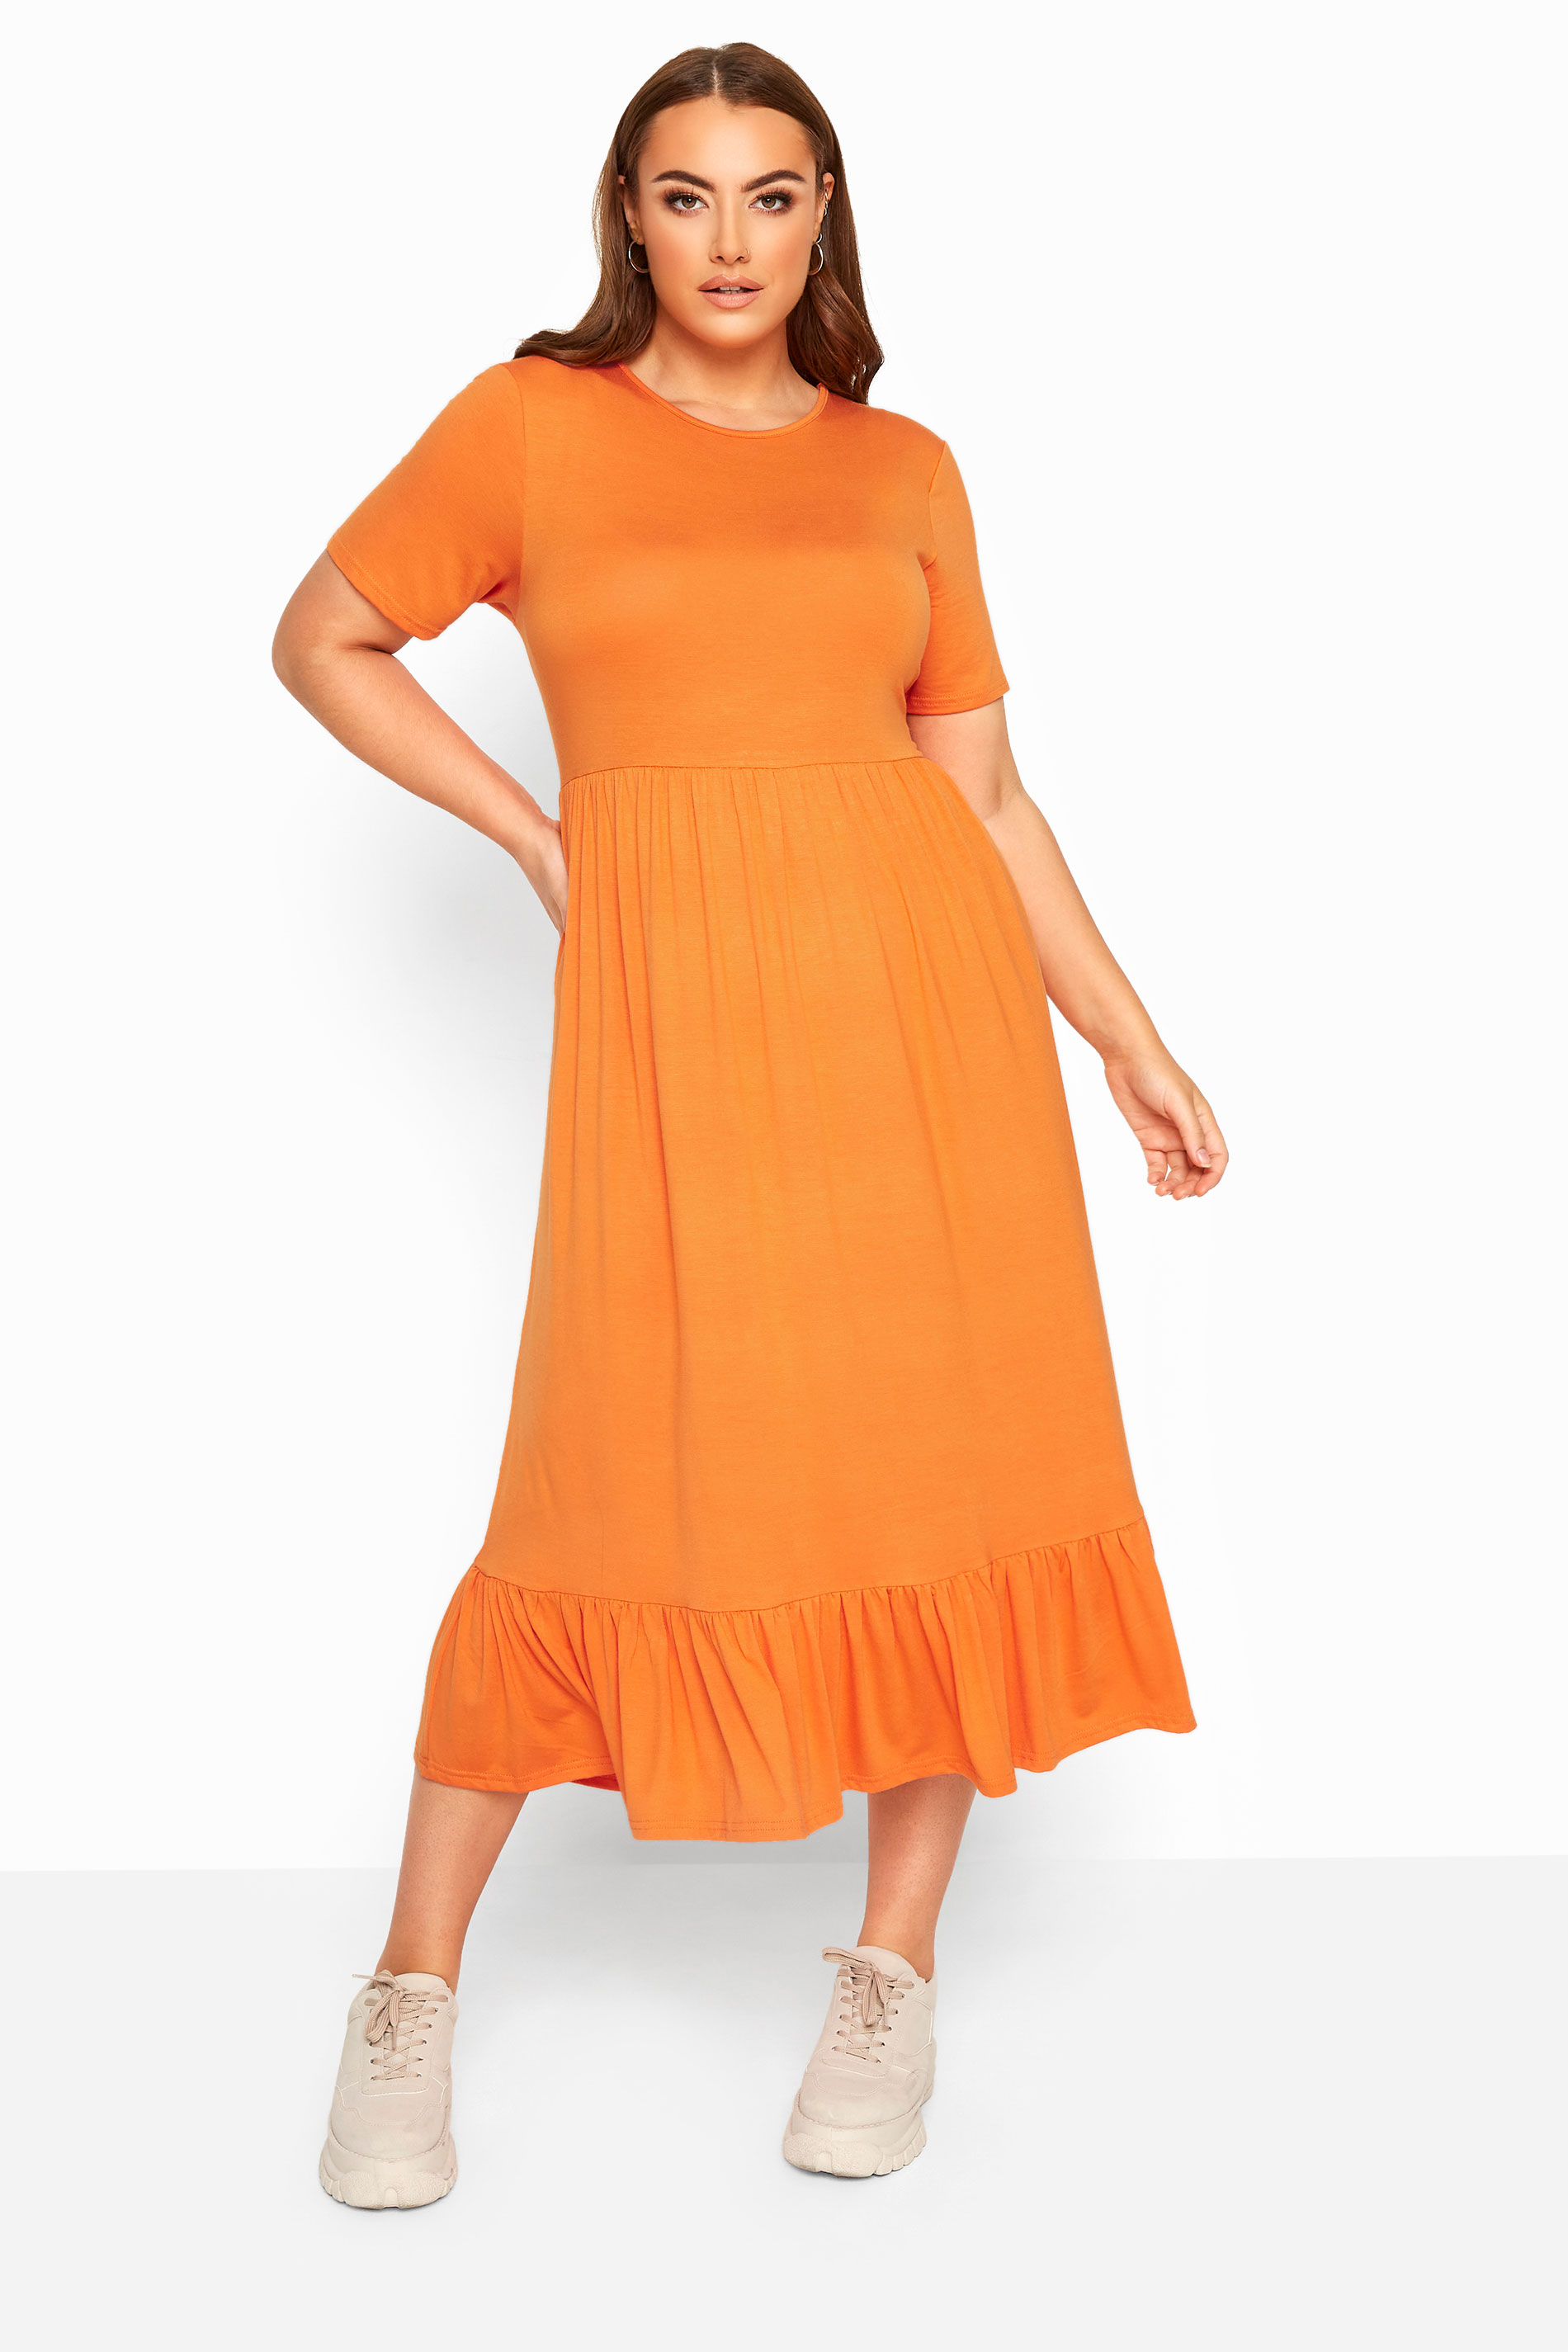 LIMITED COLLECTION Orange Tiered Maxi Smock Dress